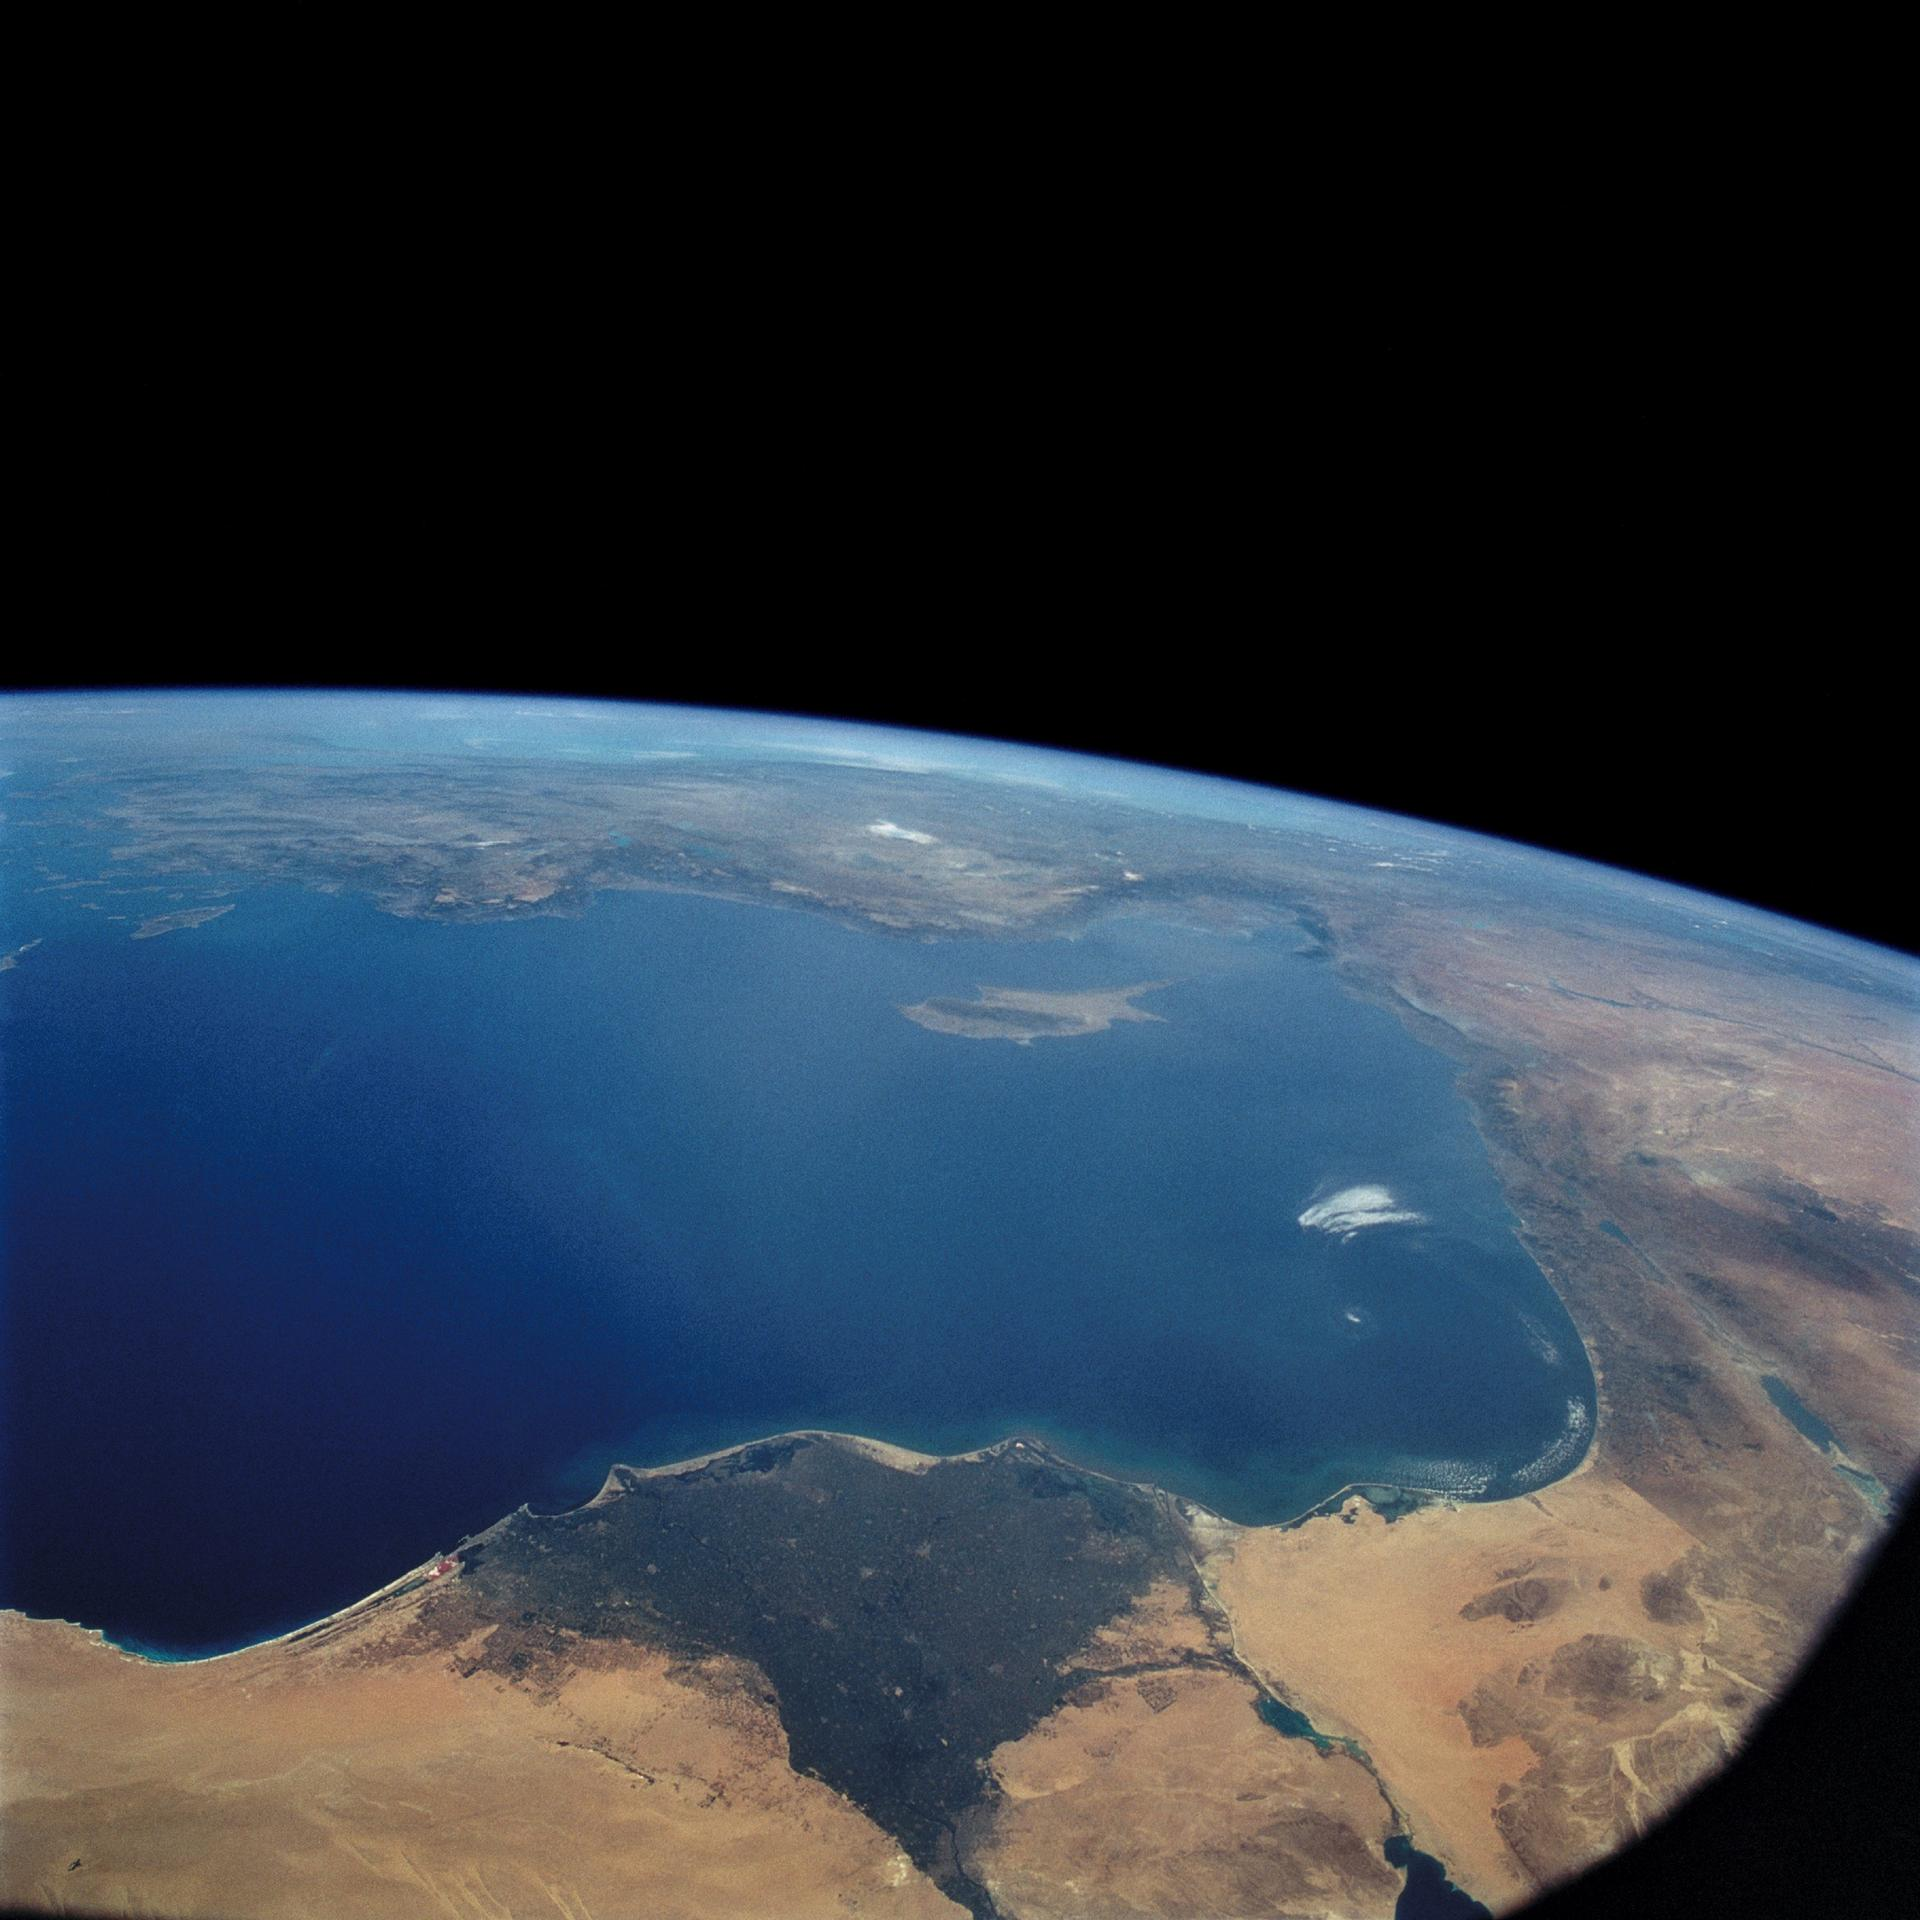 A 1993 image captures a view of the Nile River, the Eastern Mediterranean, the Euphrates River, and the Dead Sea.